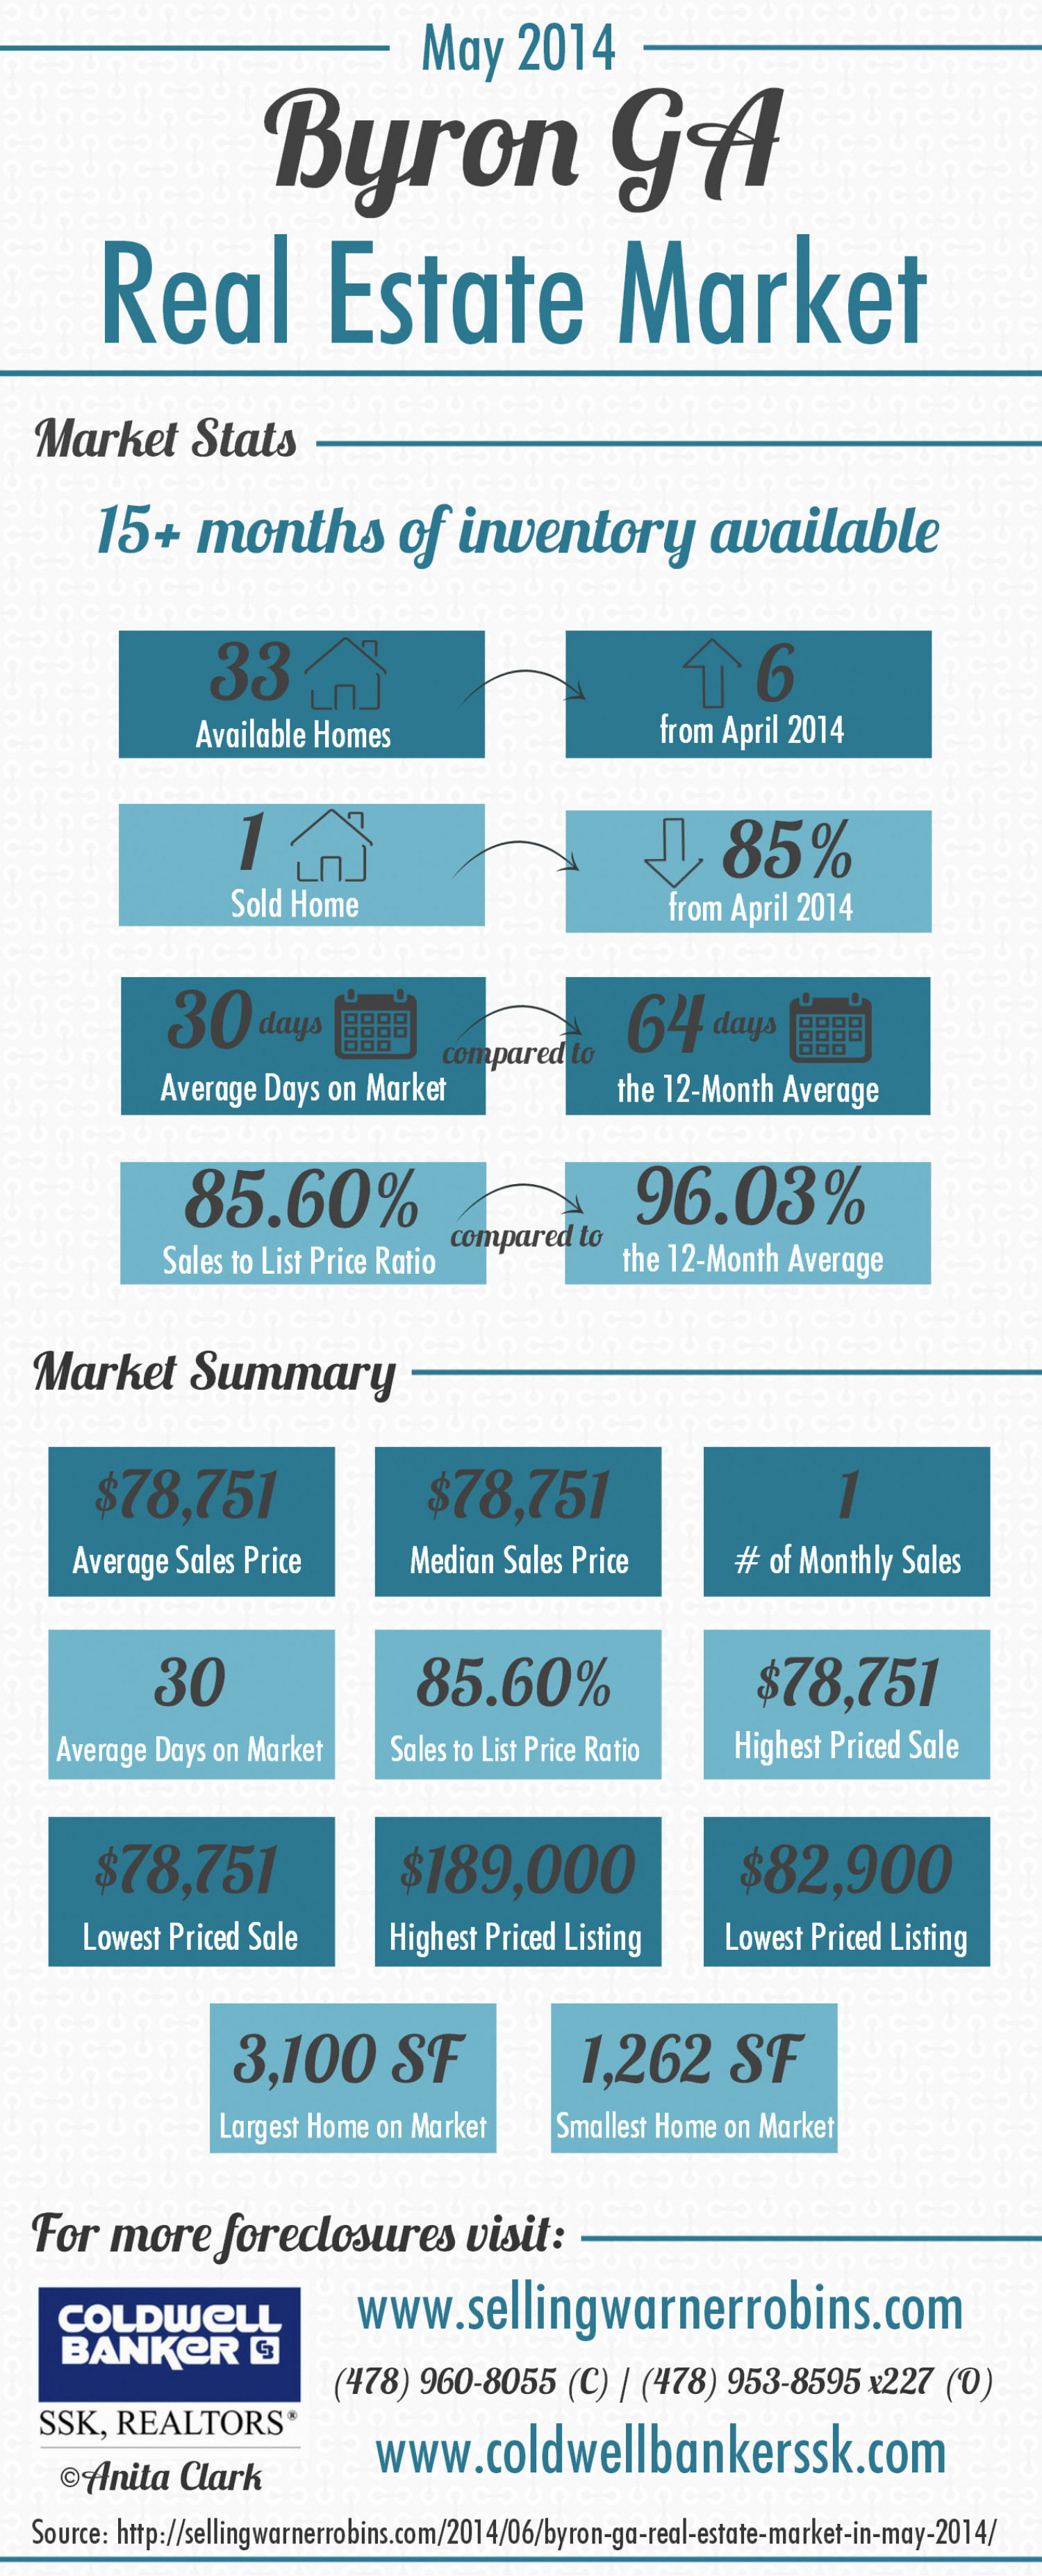 Byron GA Real Estate Market in May 2014 Infographic